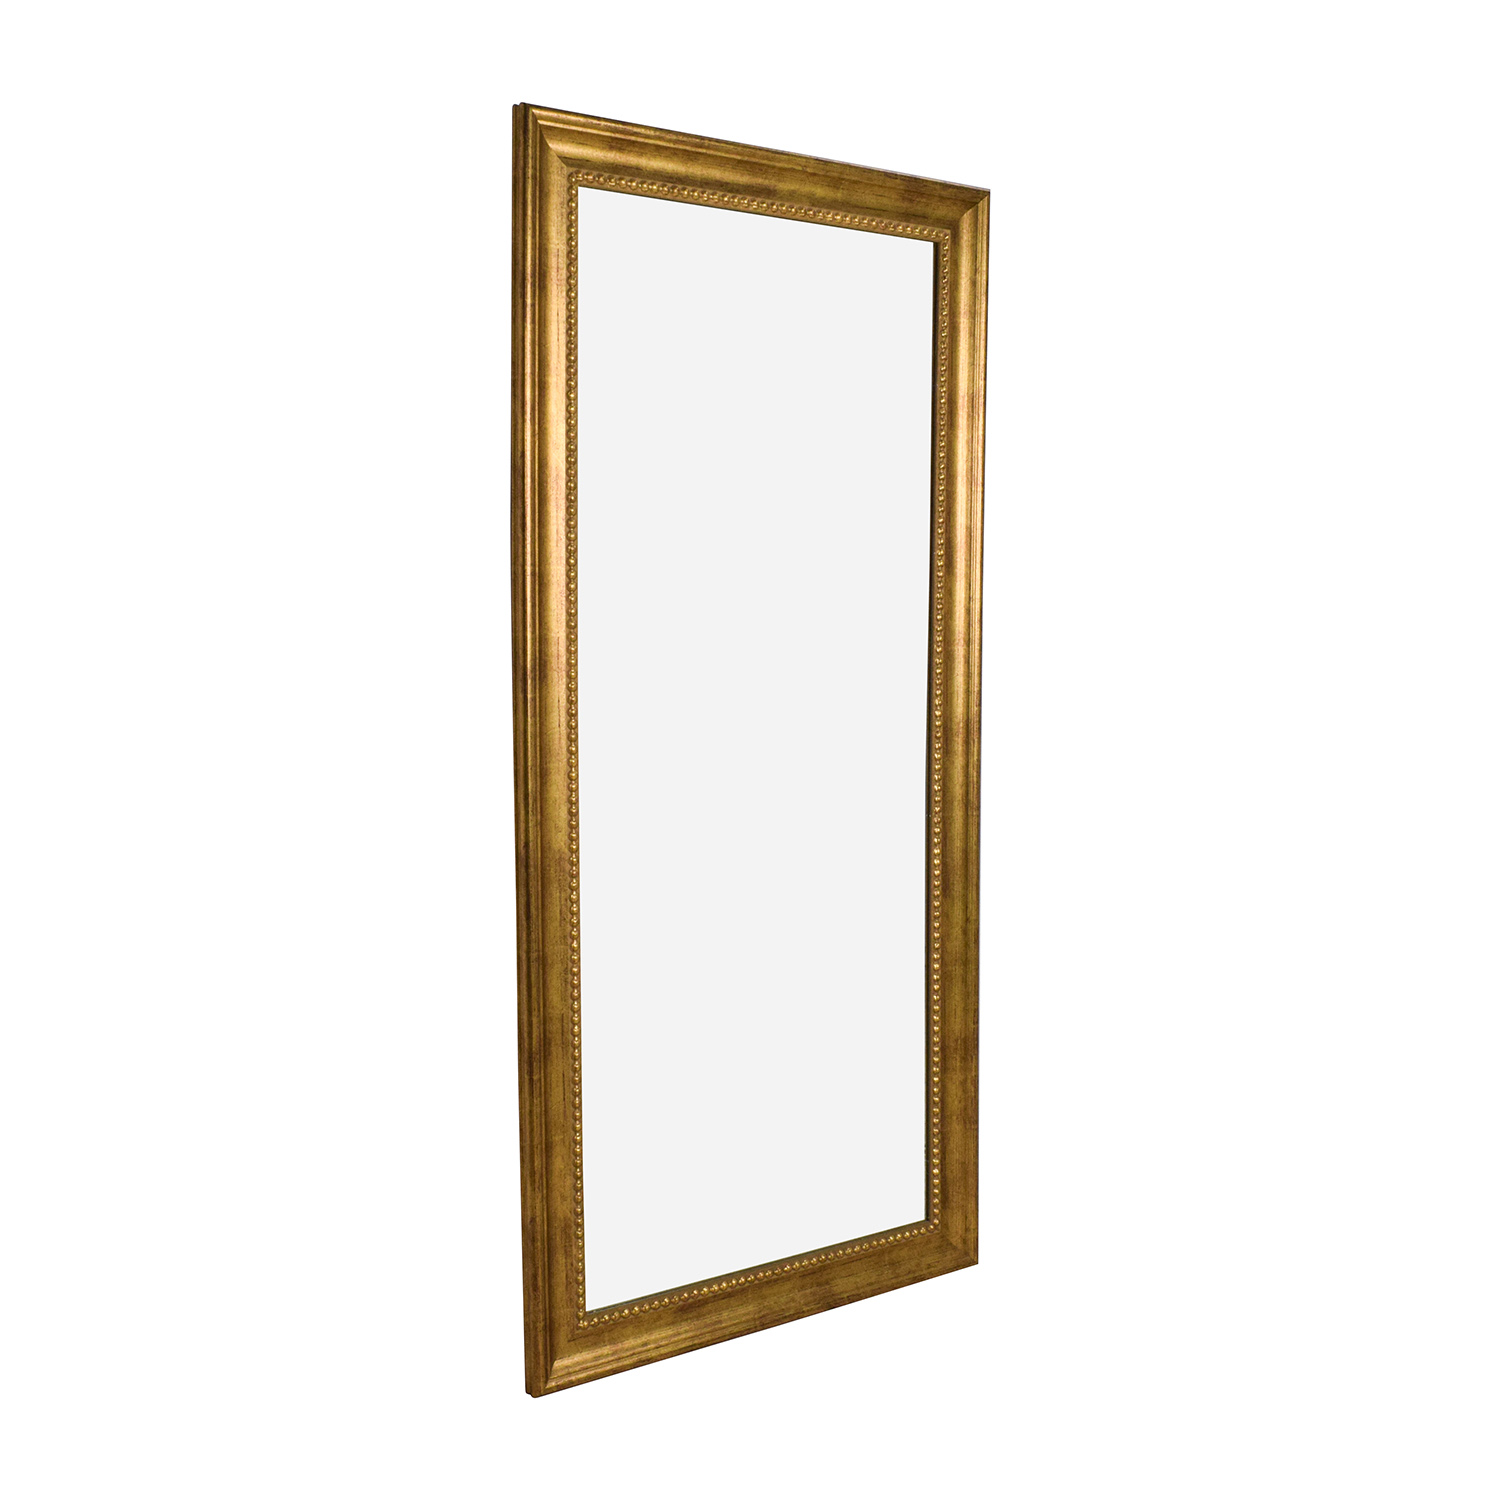 buy Gold Frame Standing Mirror online